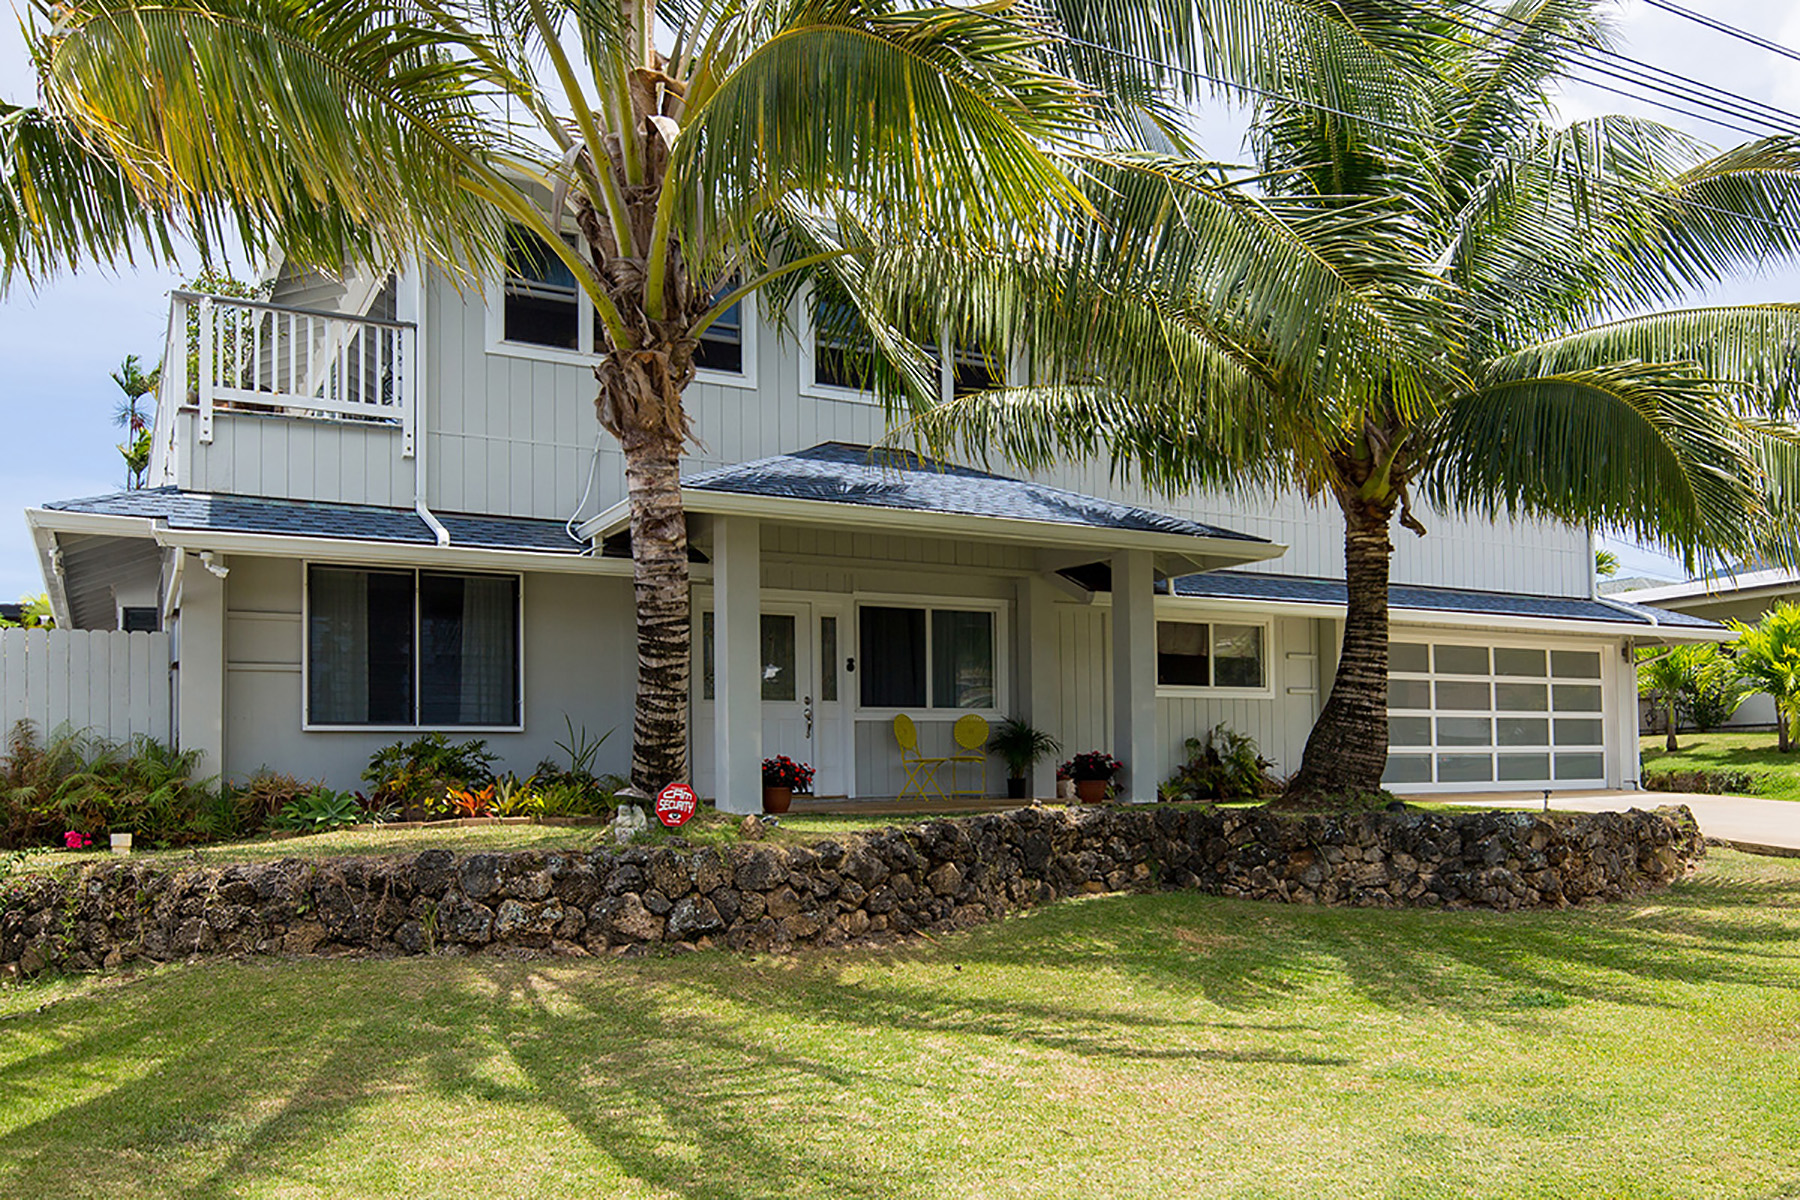 Villa per Vendita alle ore Luxury by the Sea 45-052 Ka Hanahou Place Kaneohe, Hawaii 96744 Stati Uniti